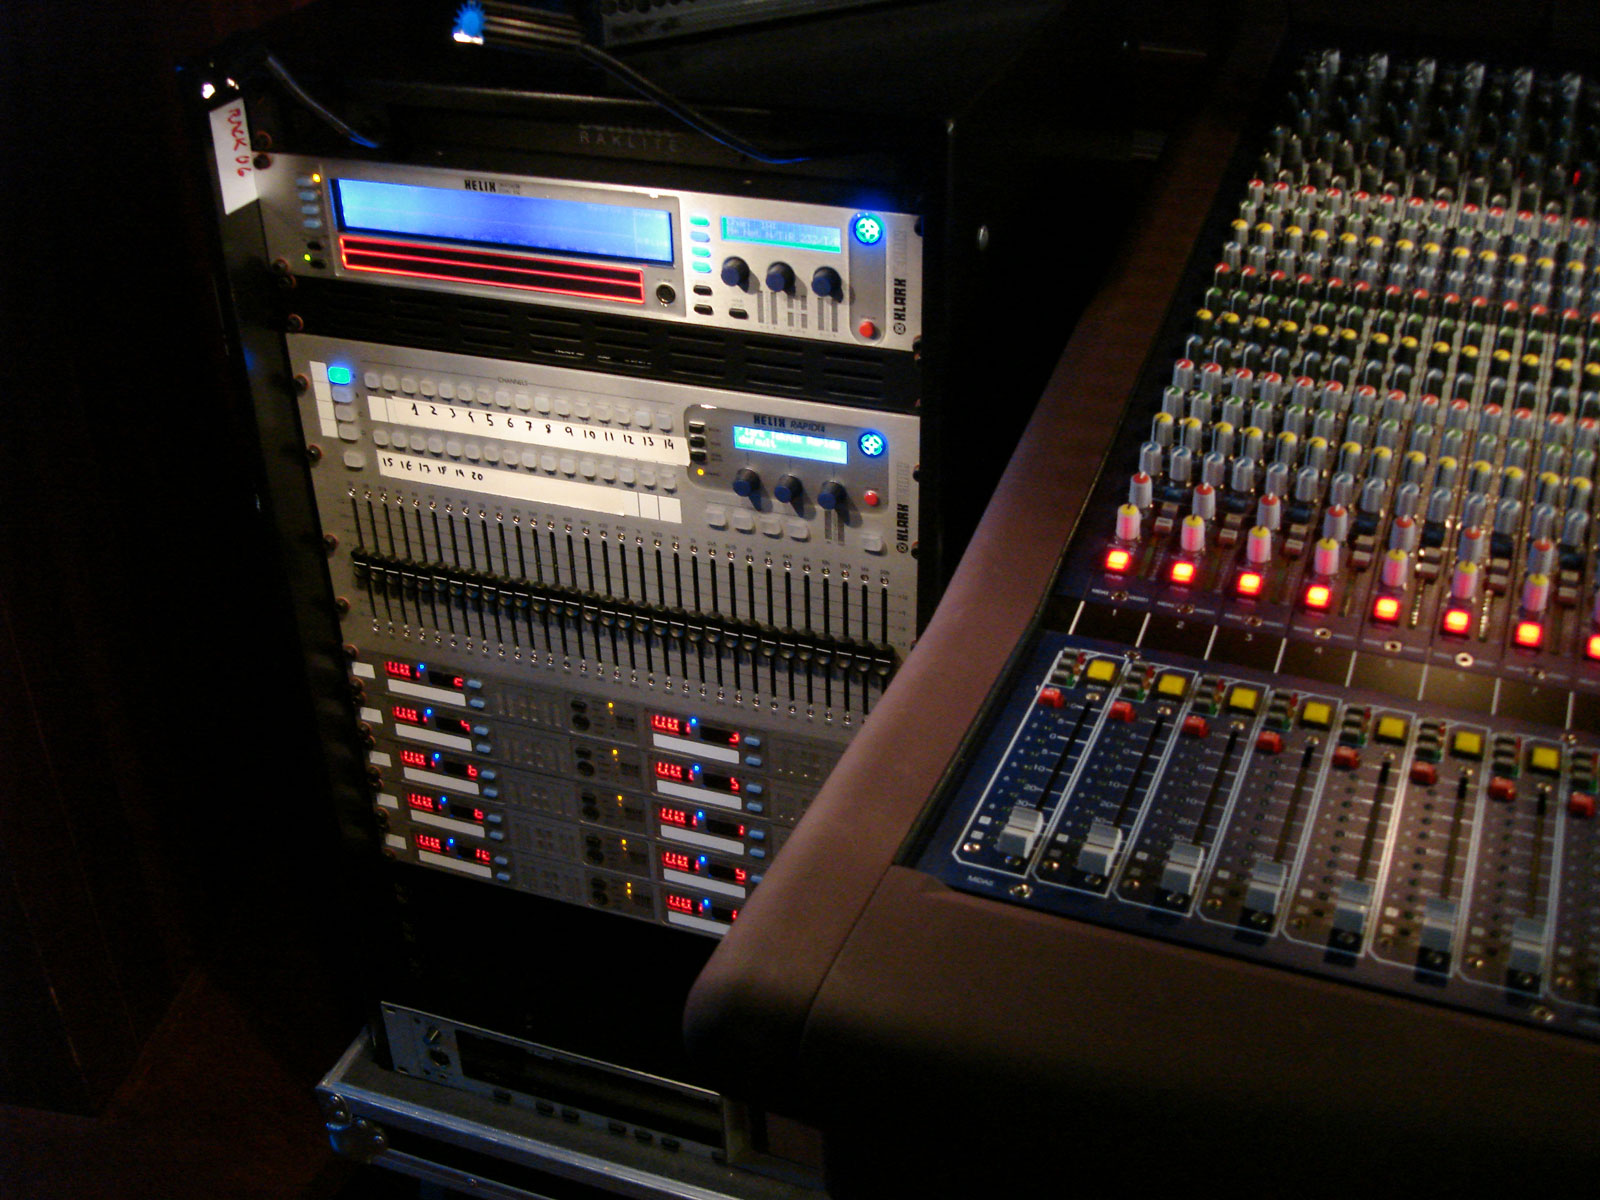 Memphis Audio systems rental